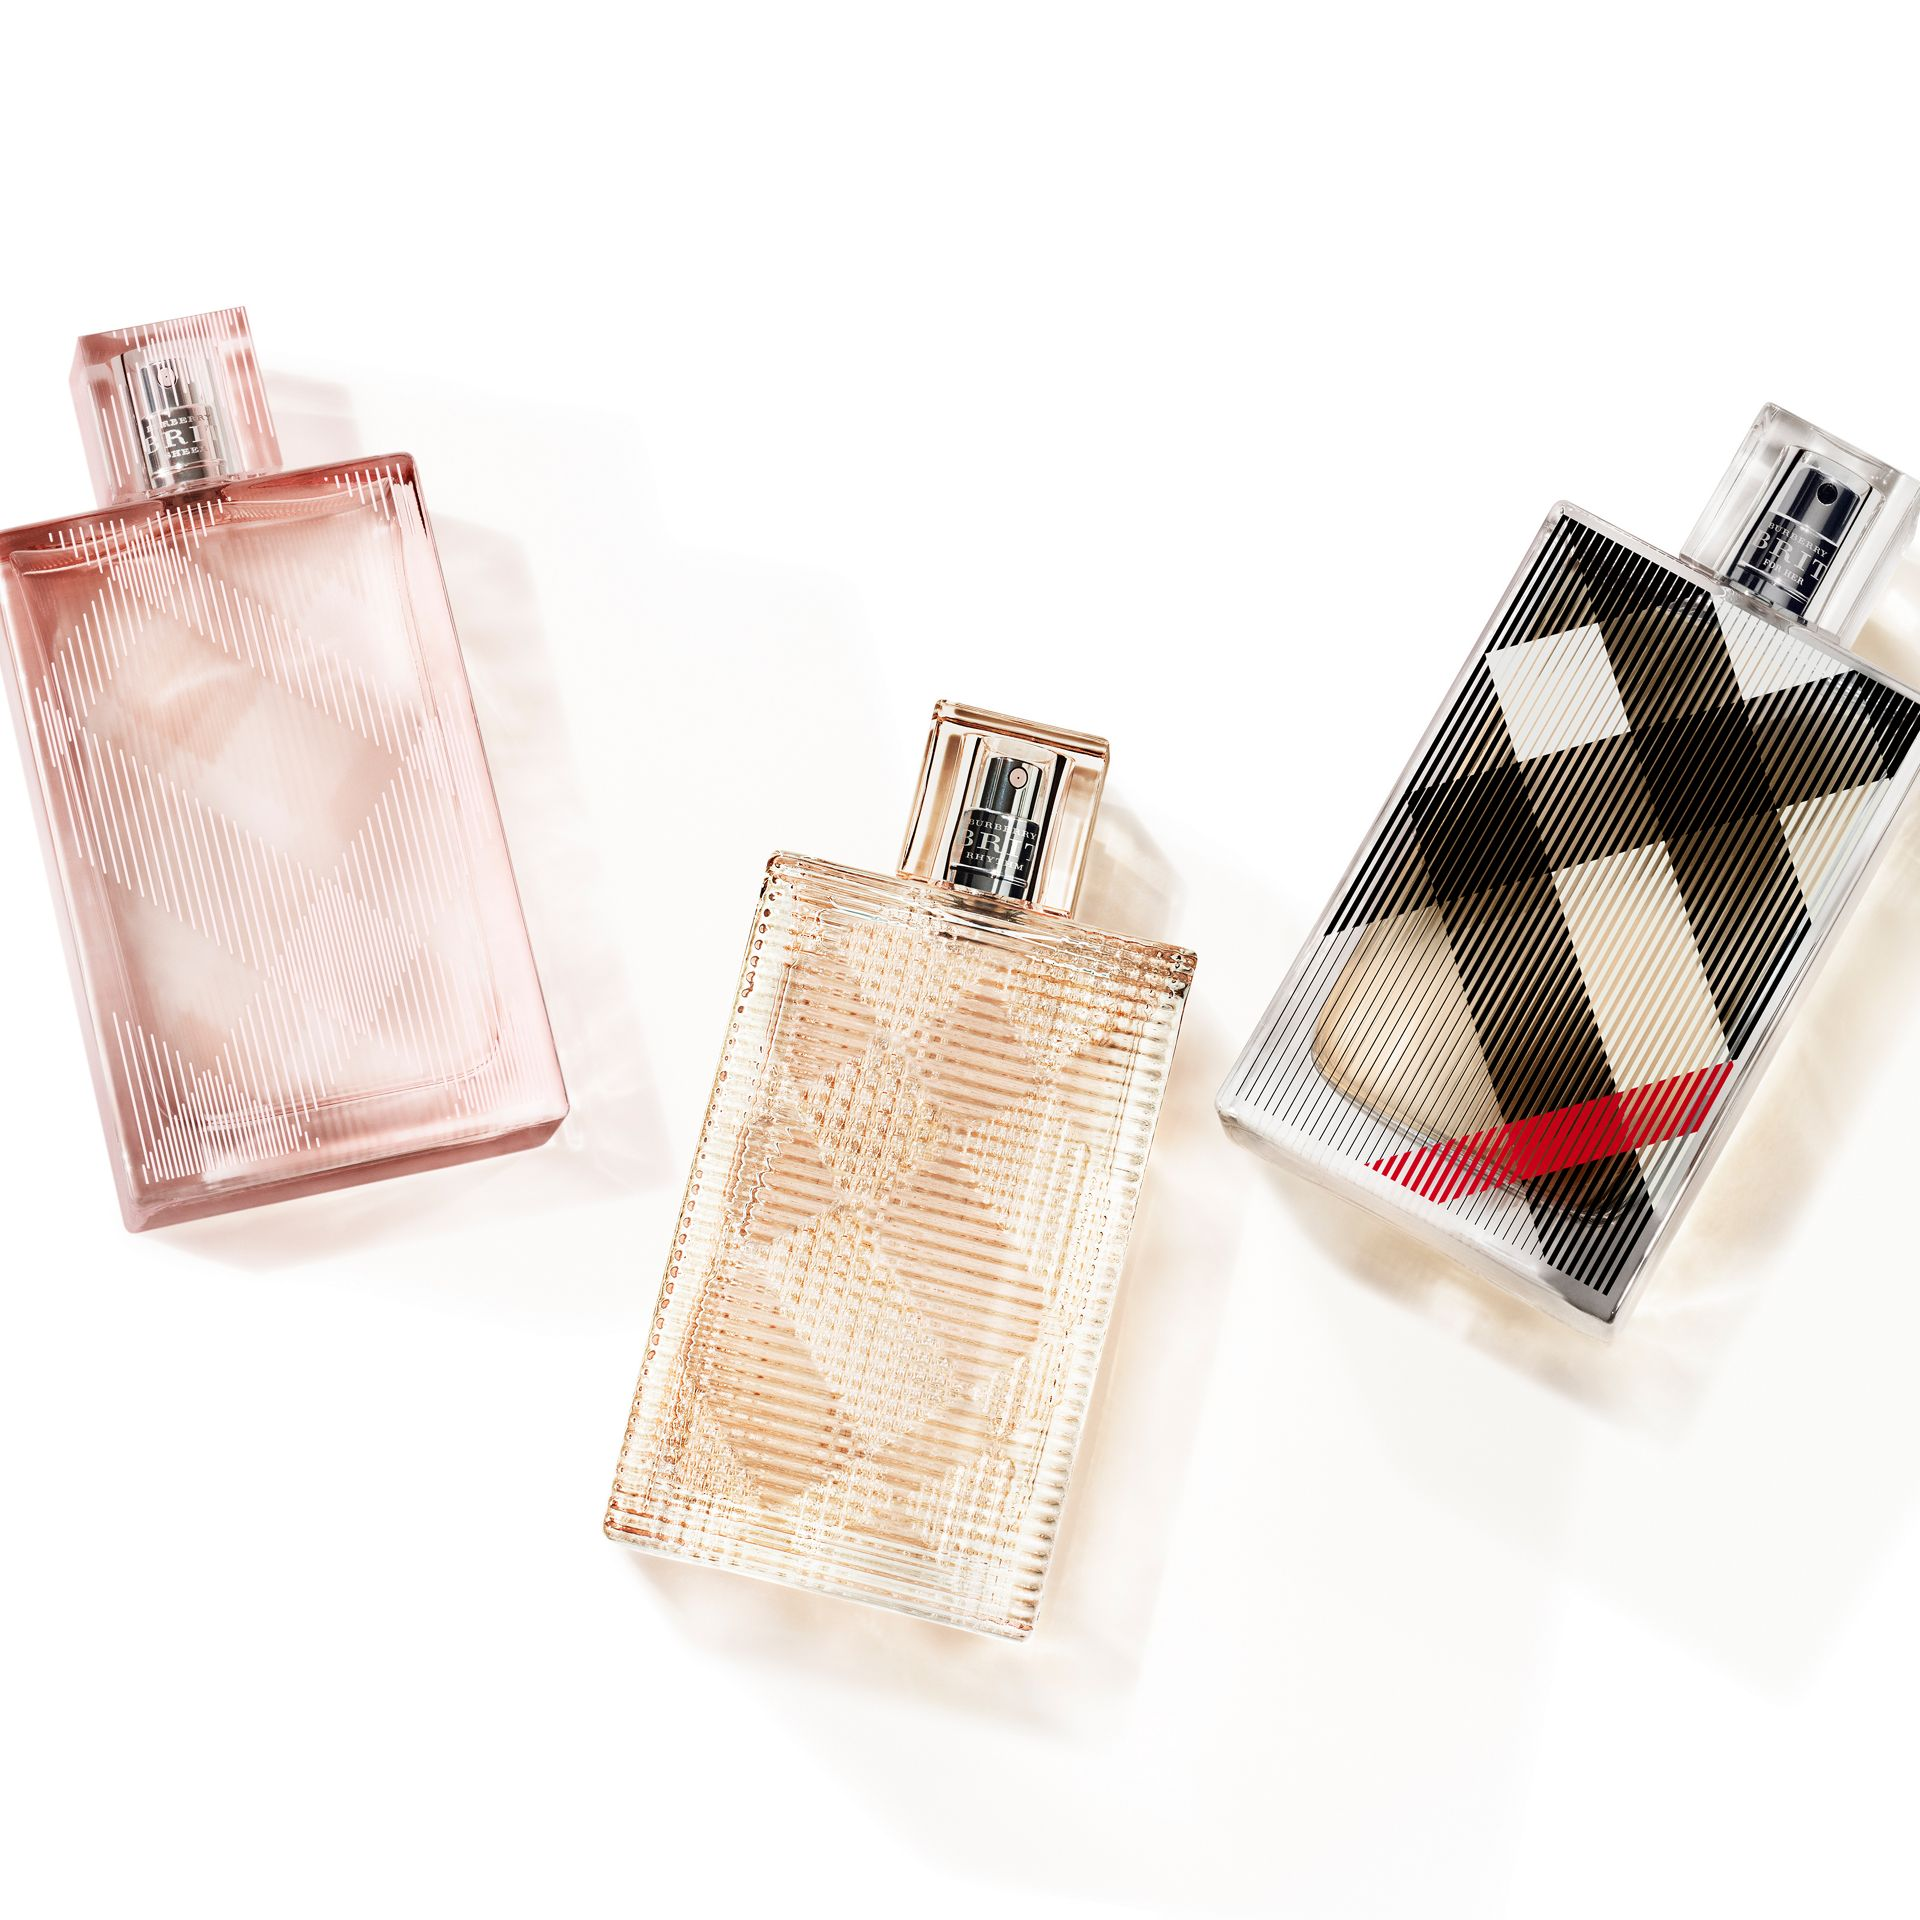 Burberry Brit For Her Eau de Toilette 50ml - gallery image 3